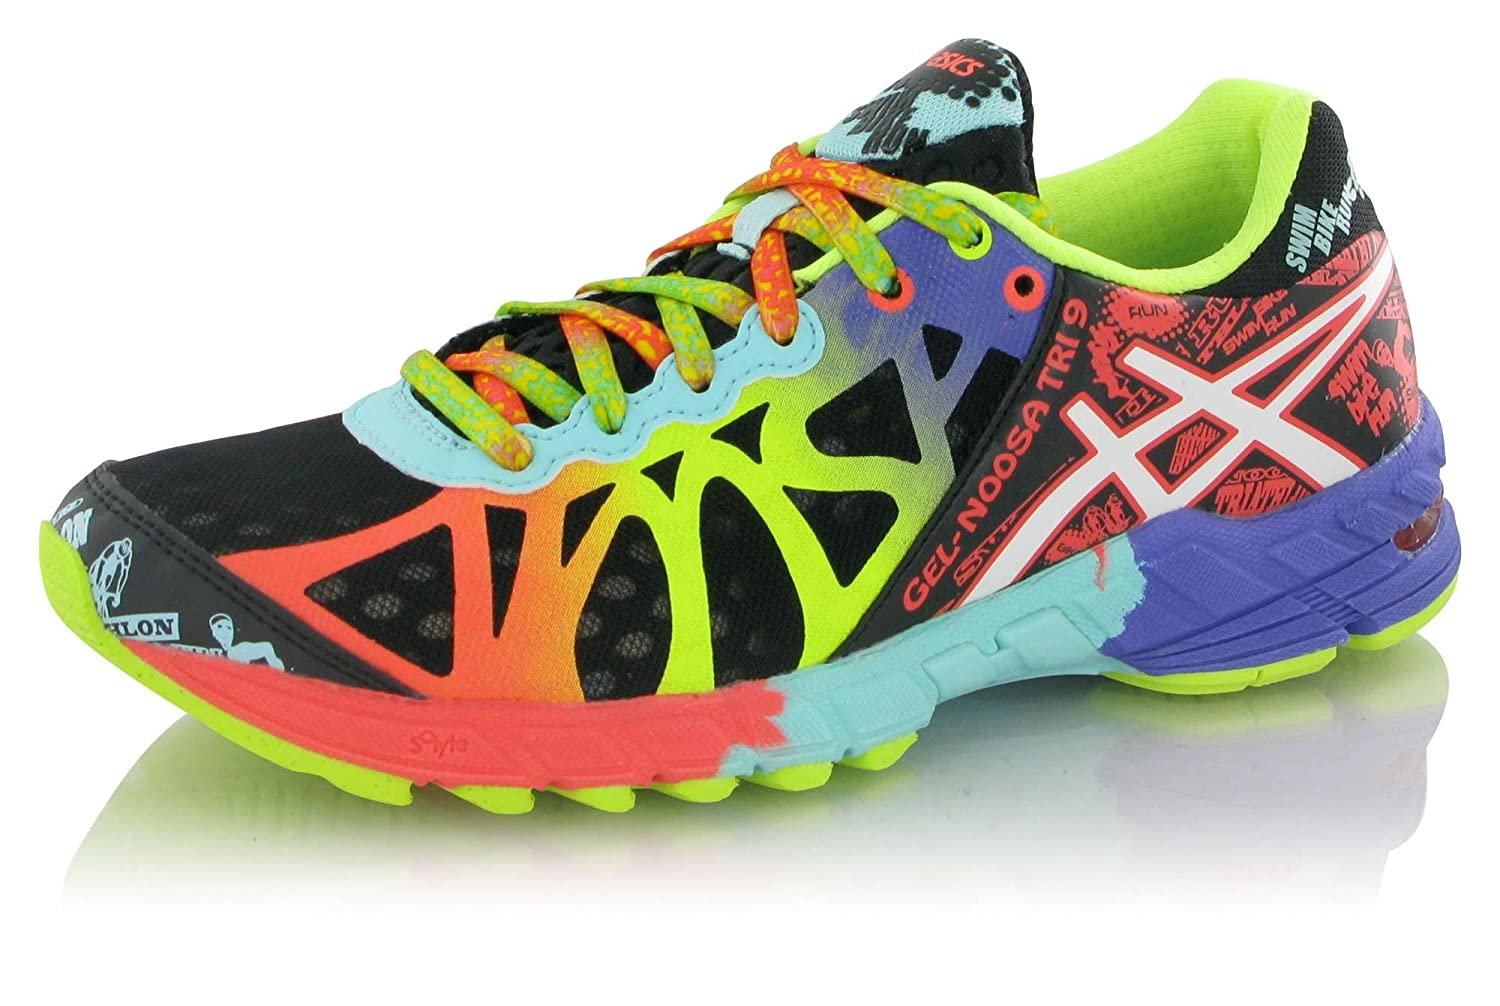 size 40 53211 af3a1 ASICS GEL-NOOSA TRI 9 Women s Running Shoes - 9  Amazon.co.uk  Shoes   Bags